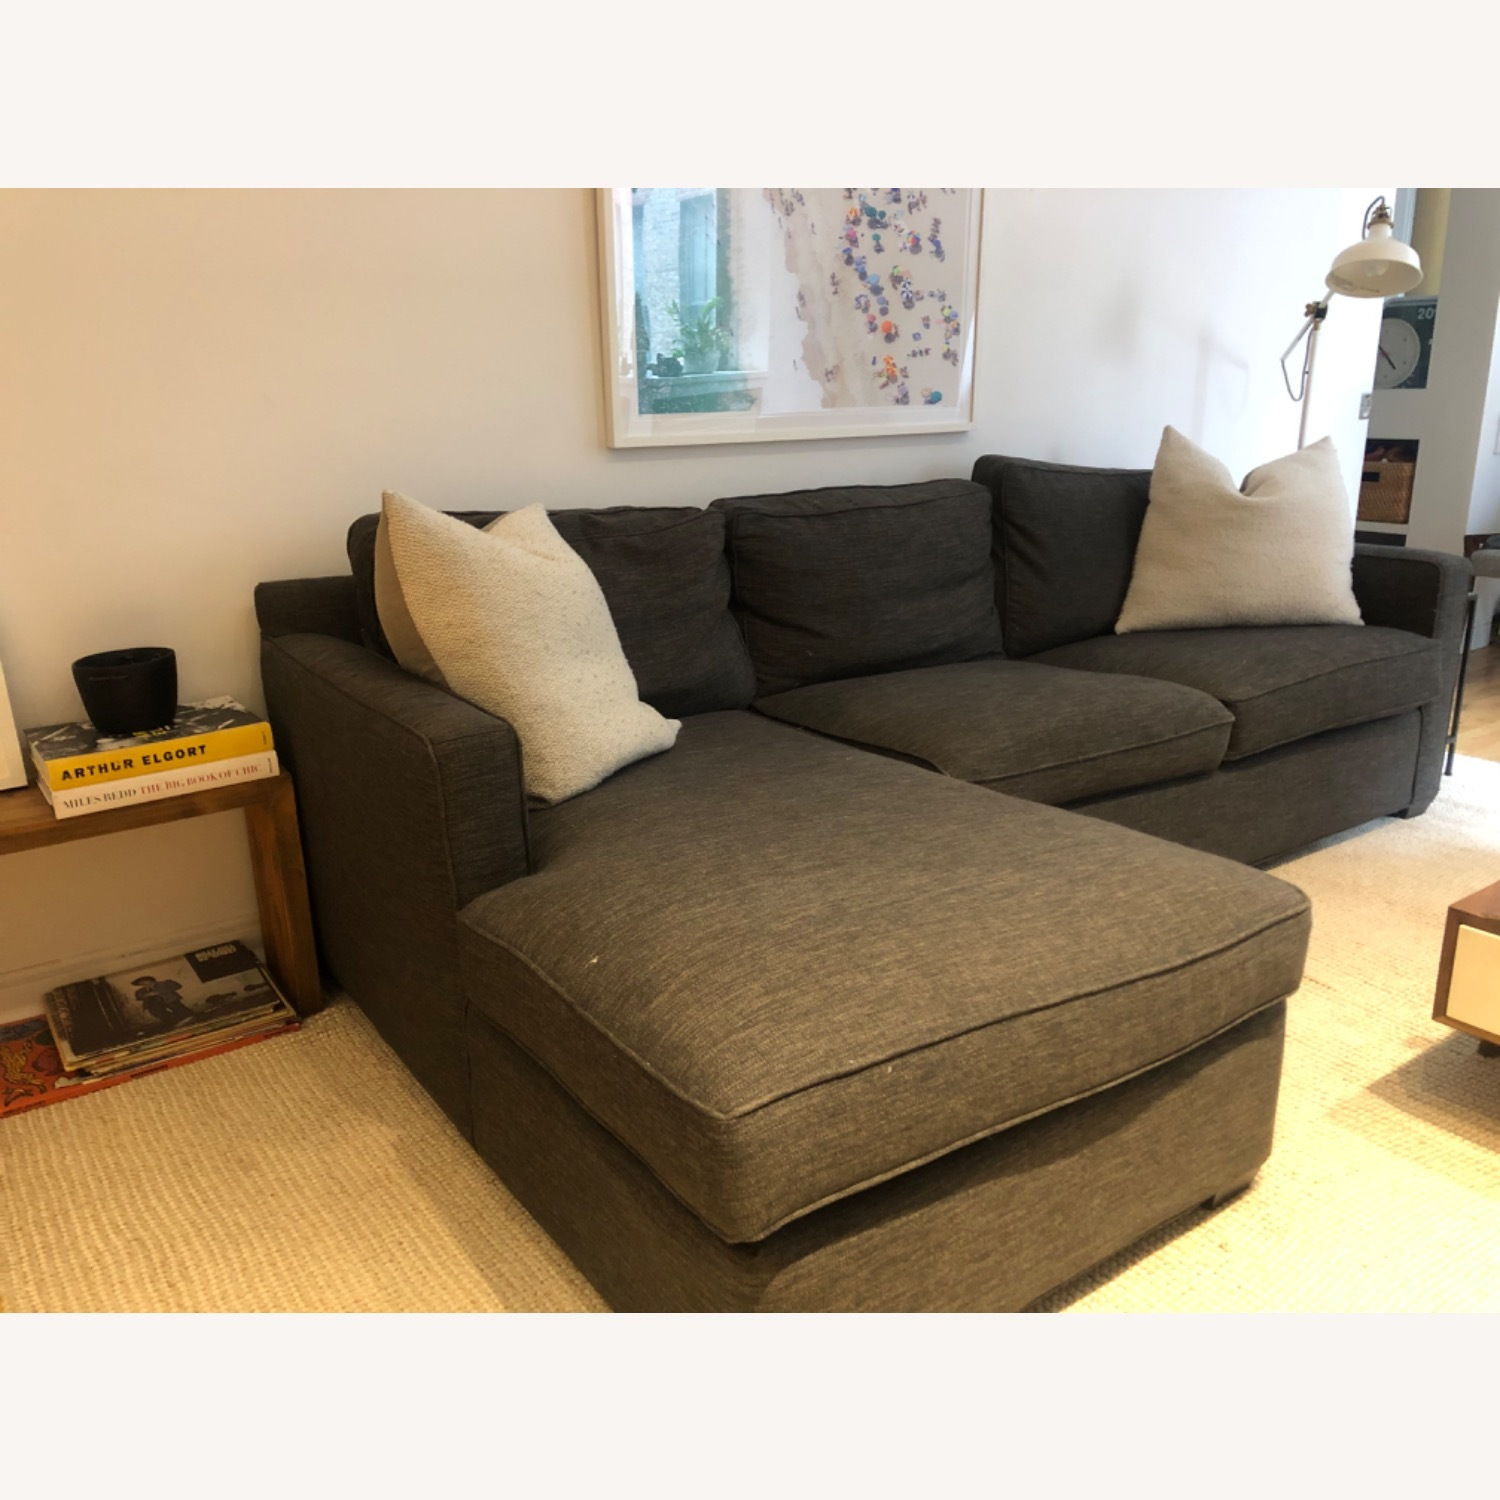 Crate and Barrel Sectional Sofa - image-1